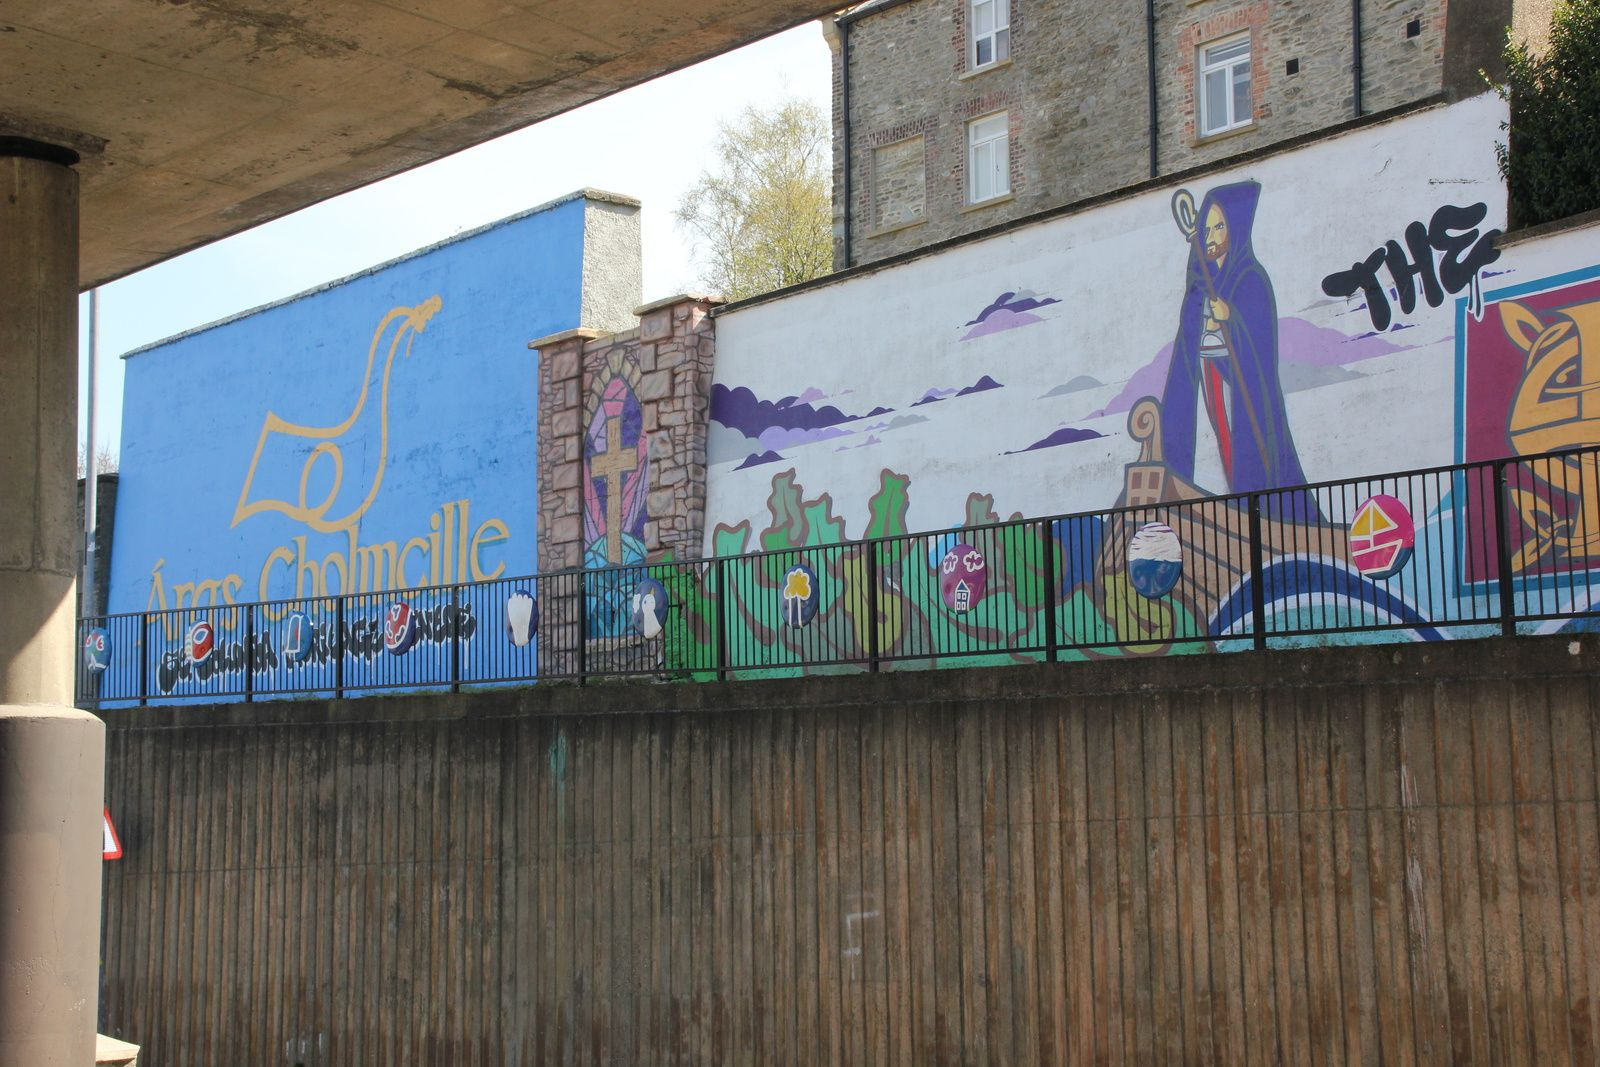 550) Free Derry Wall